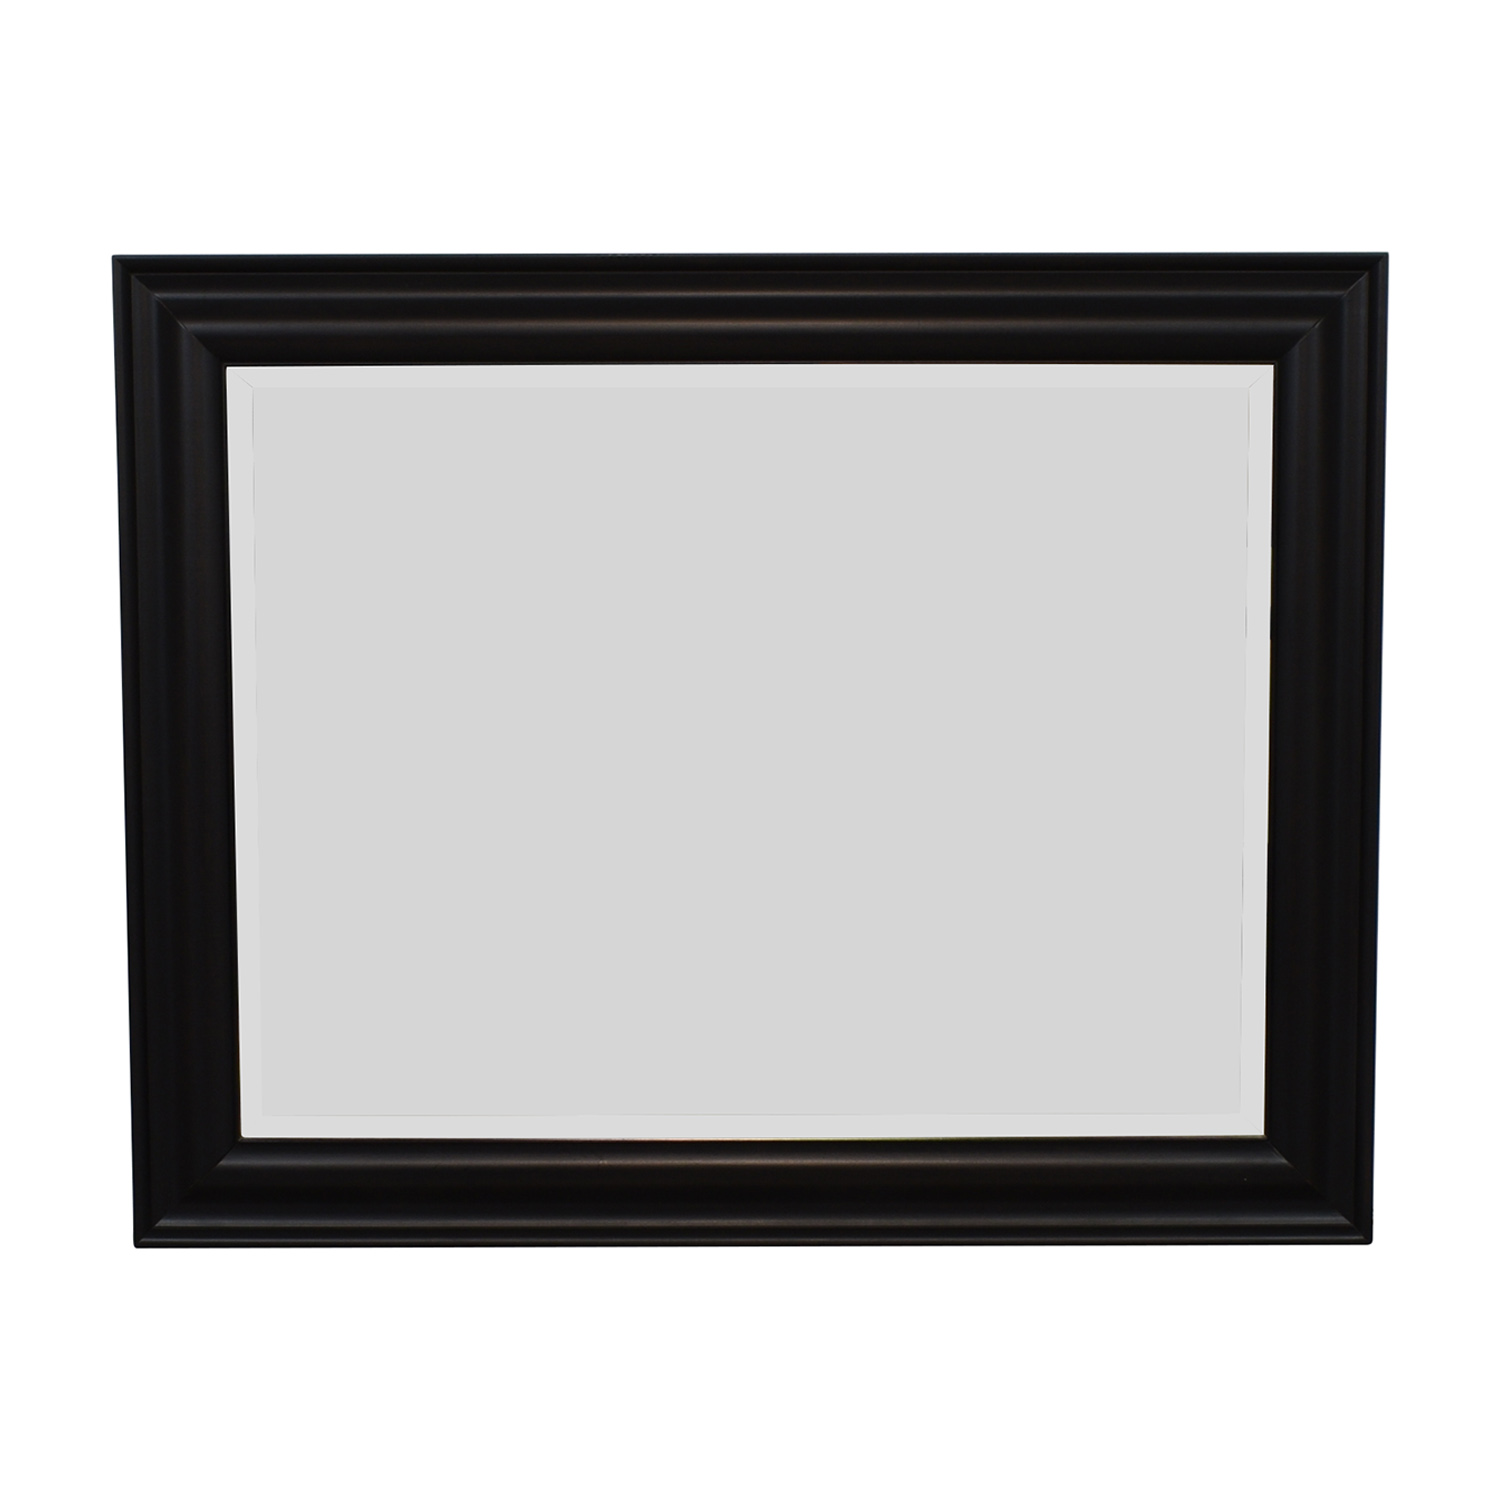 West Elm West Elm Framed Mirror black